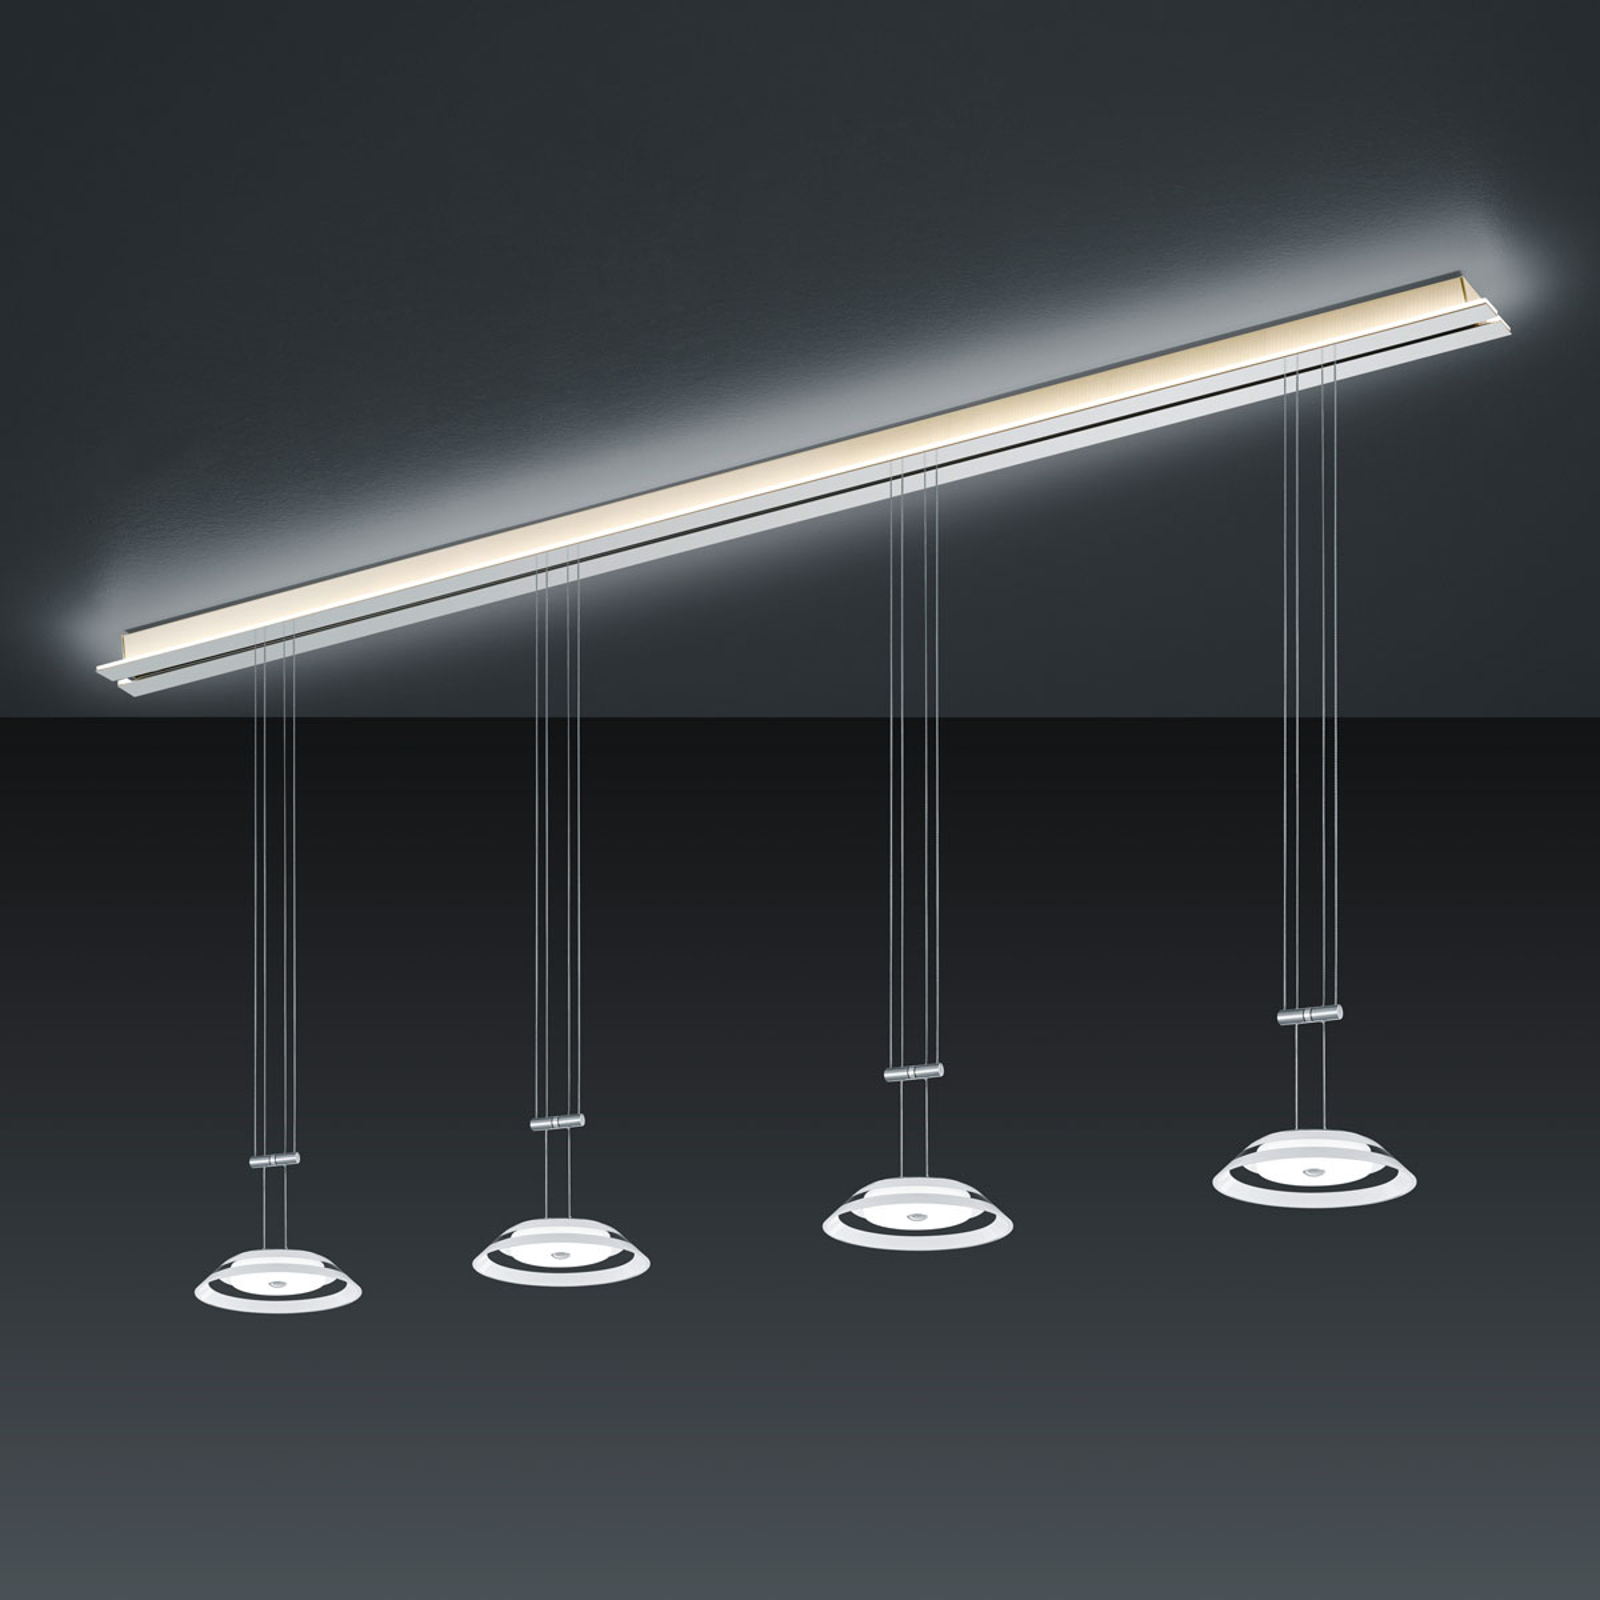 BANKAMP Strada Callas suspension, 4 lampes, 185 cm